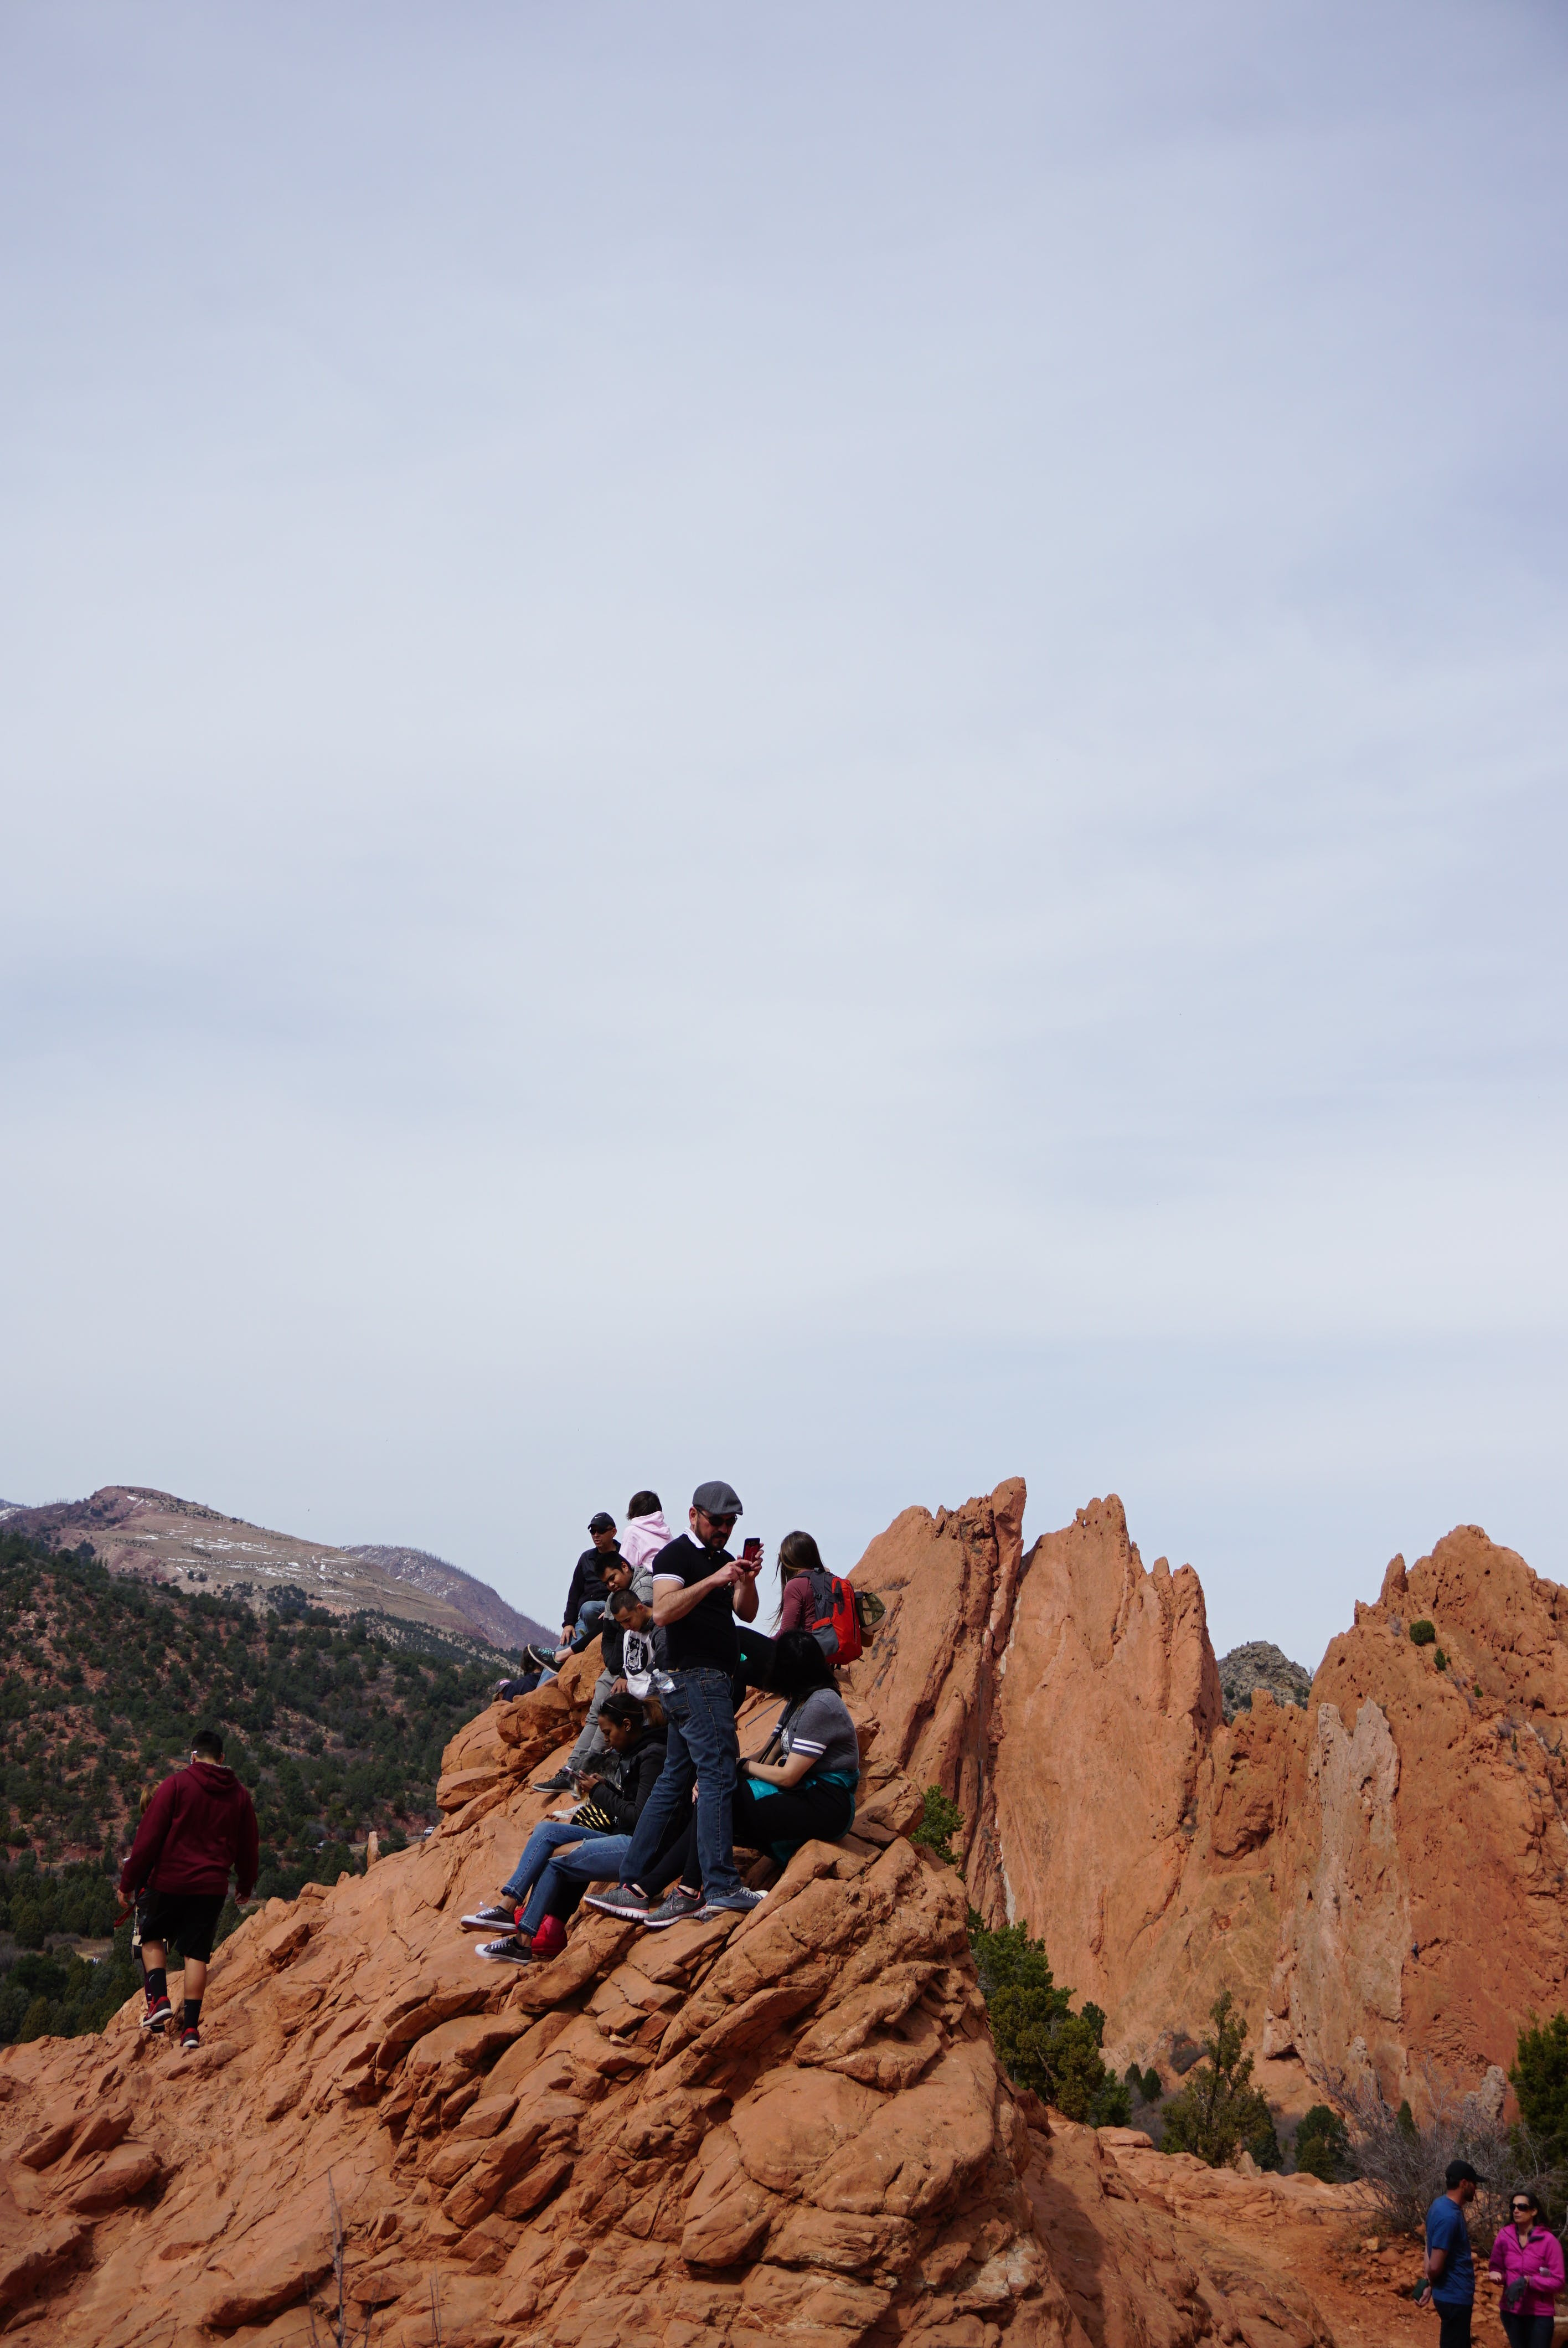 People on Brown Rock Formation